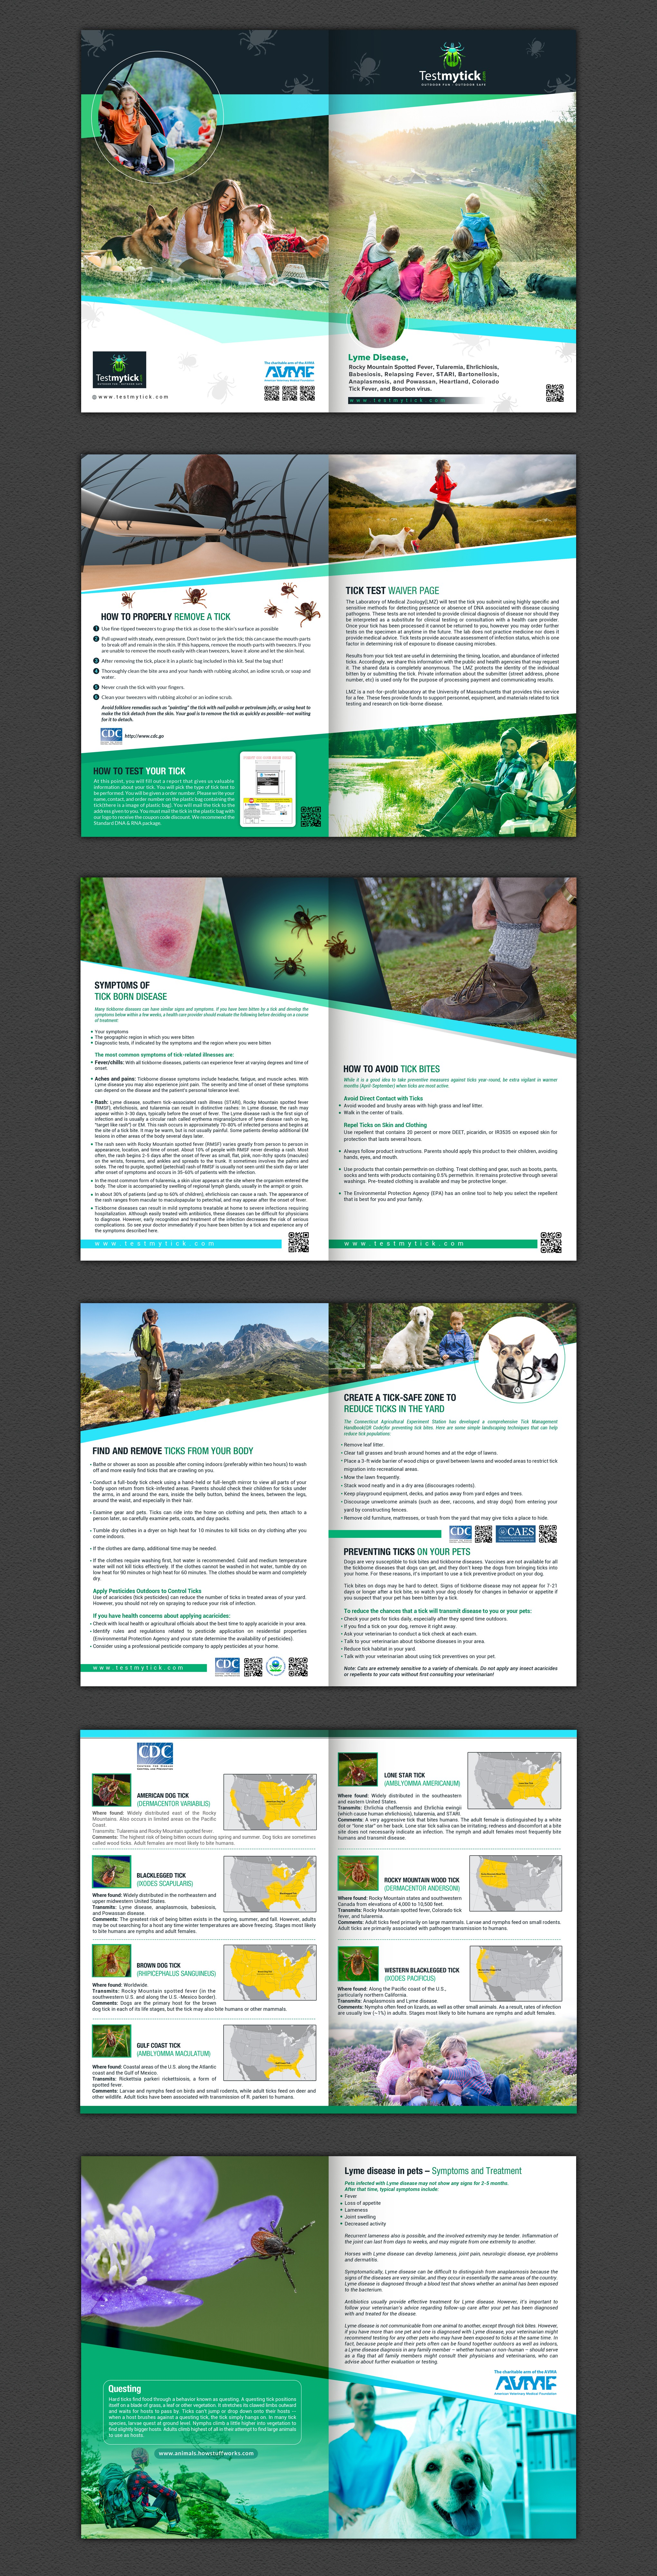 We need your design skills for a educational booklet about tick disease and testing